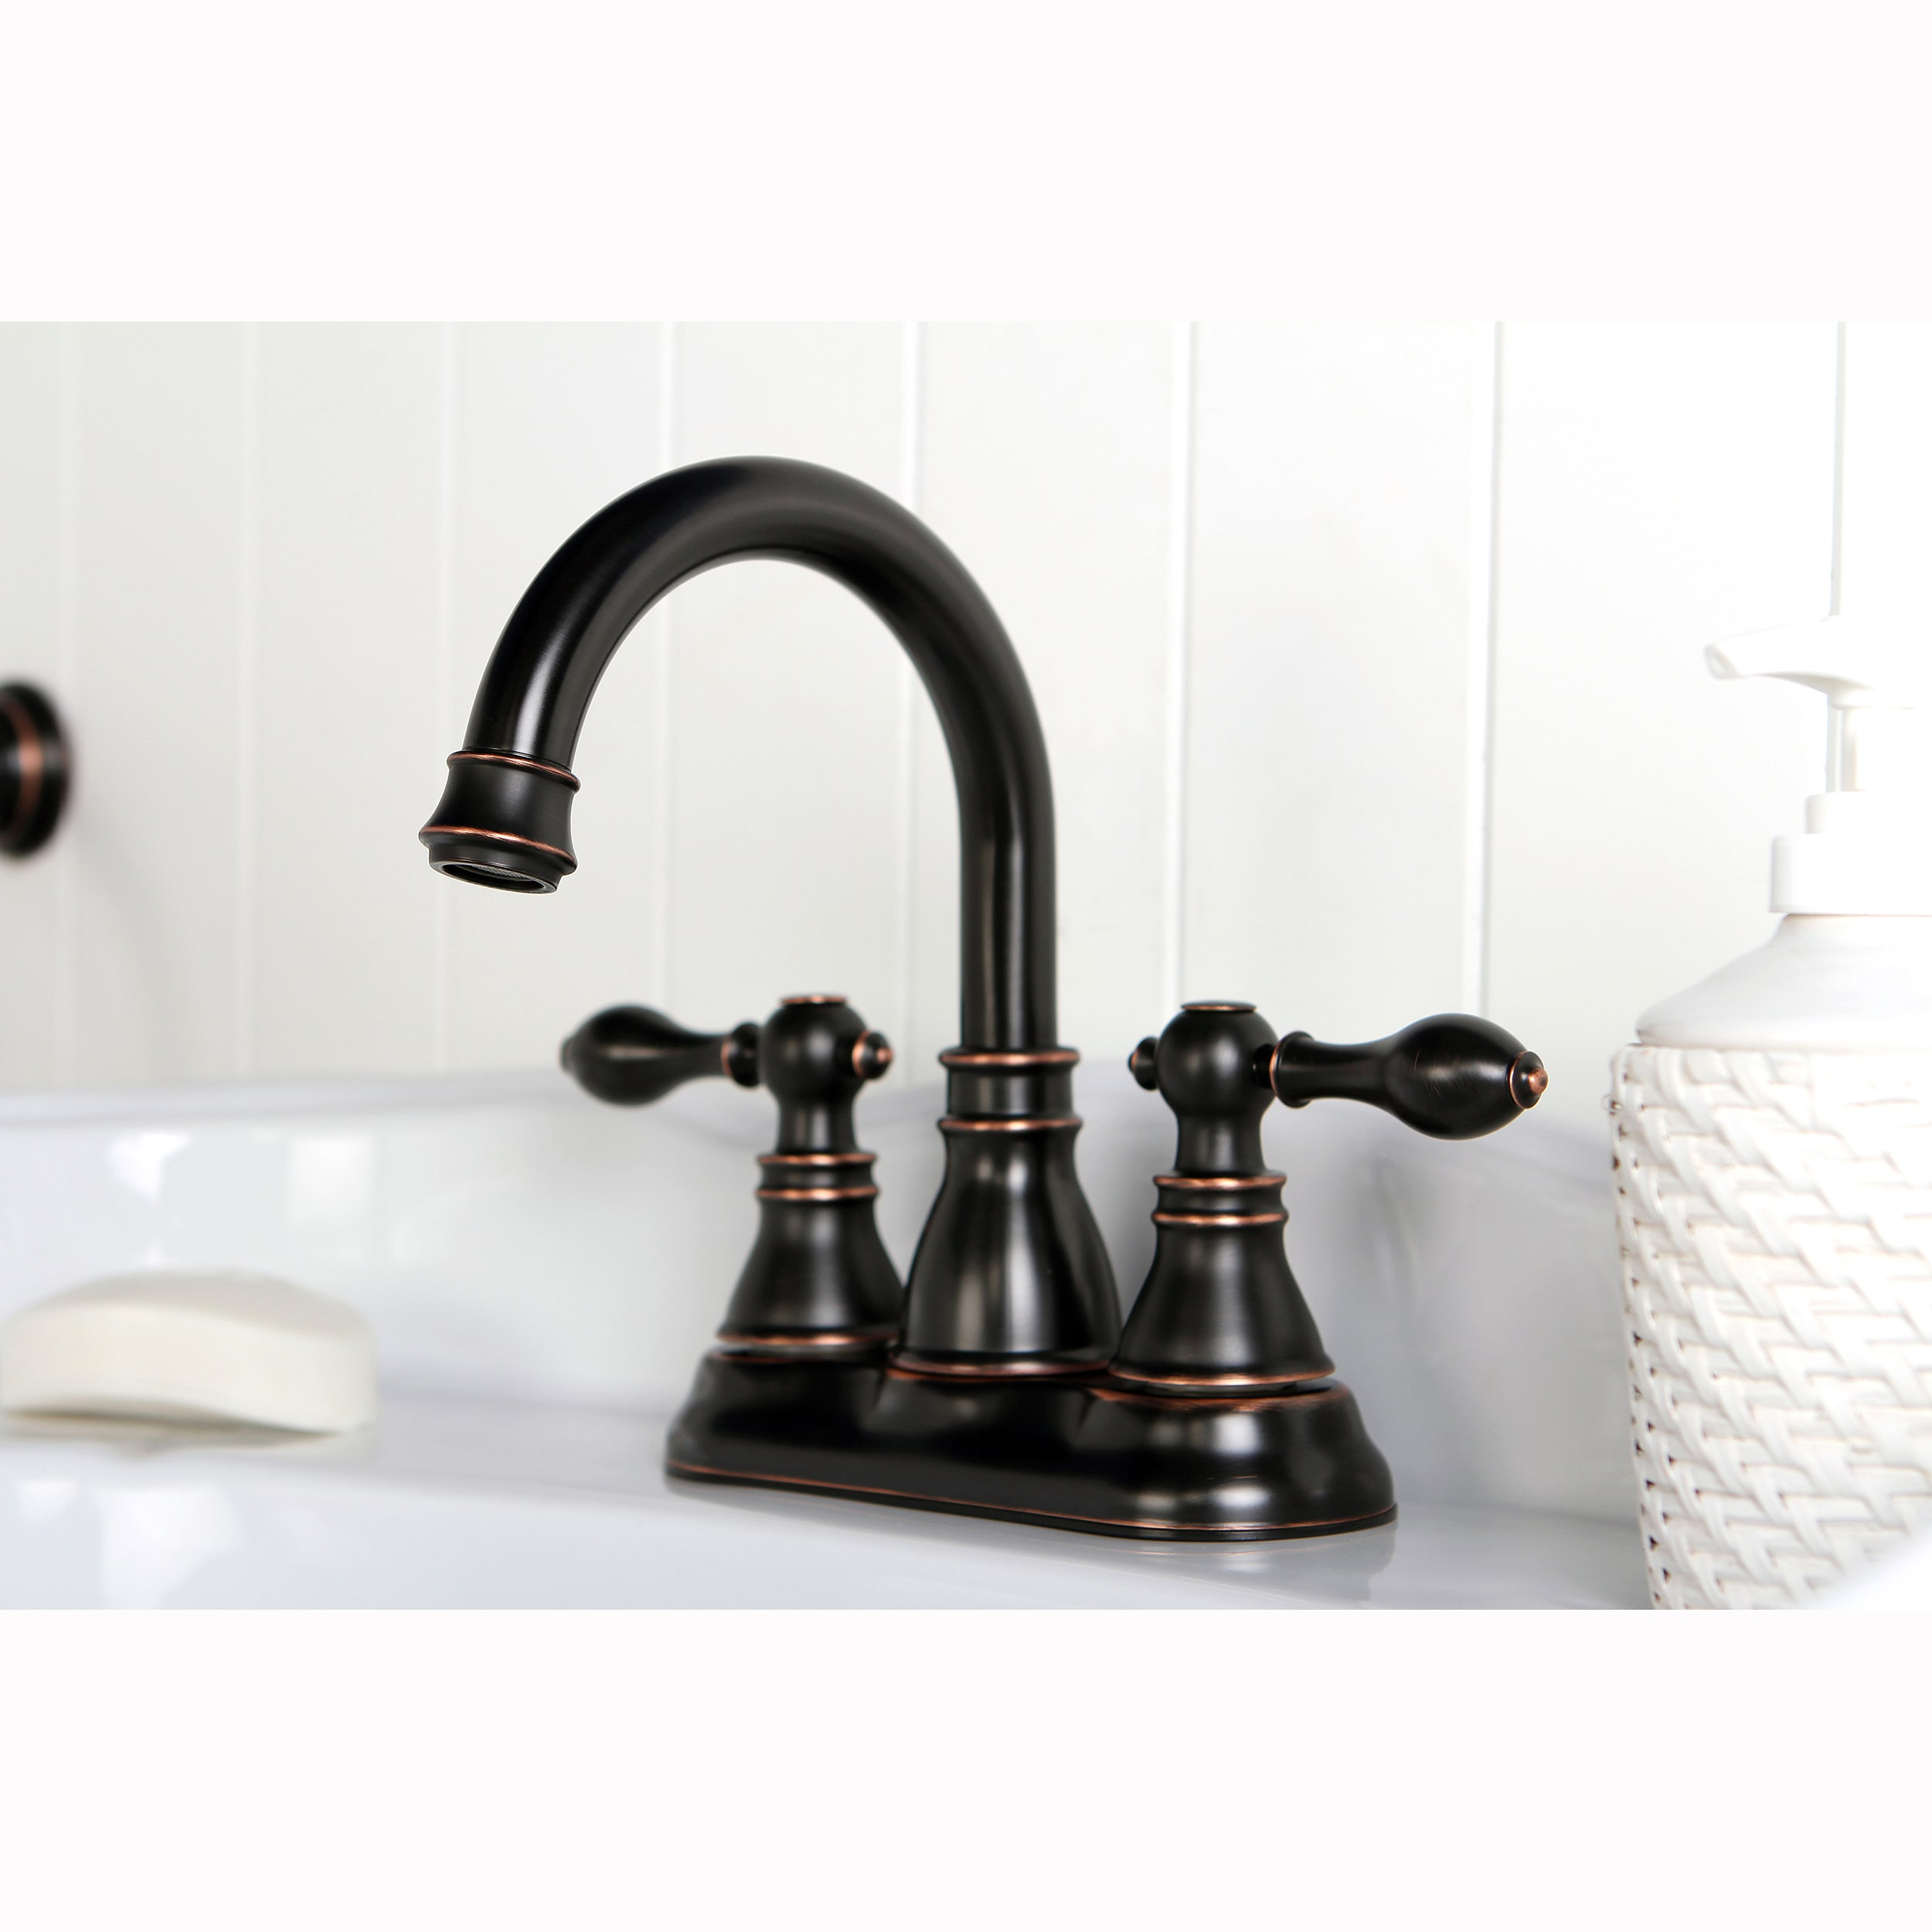 Venetian Bronze Bathroom Accessories Shop Classic High Spout Oil-rubbed Bronze Bathroom Faucet and Bathroom  Accessory Set - Free Shipping Today - Overstock - 8233123